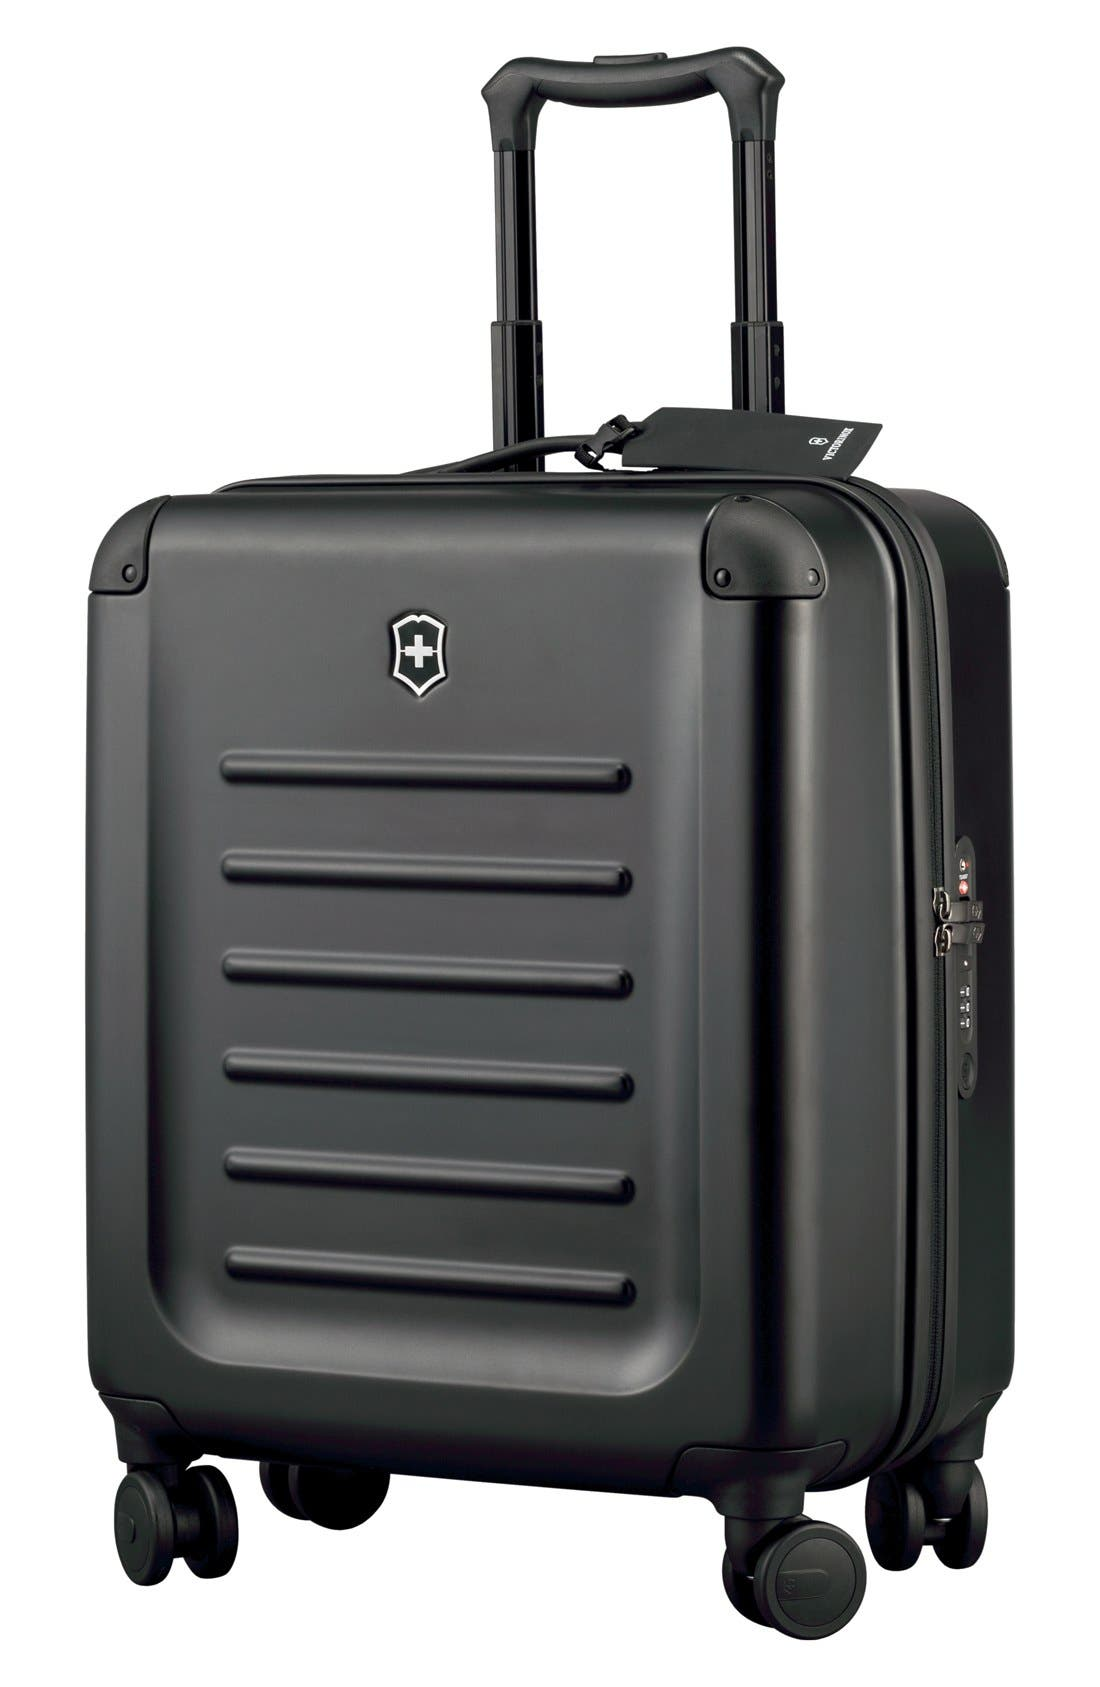 Main Image - Victorinox Swiss Army® Spectra 2.0 Extra Capacity Hard Sided Rolling 22-Inch Carry-On